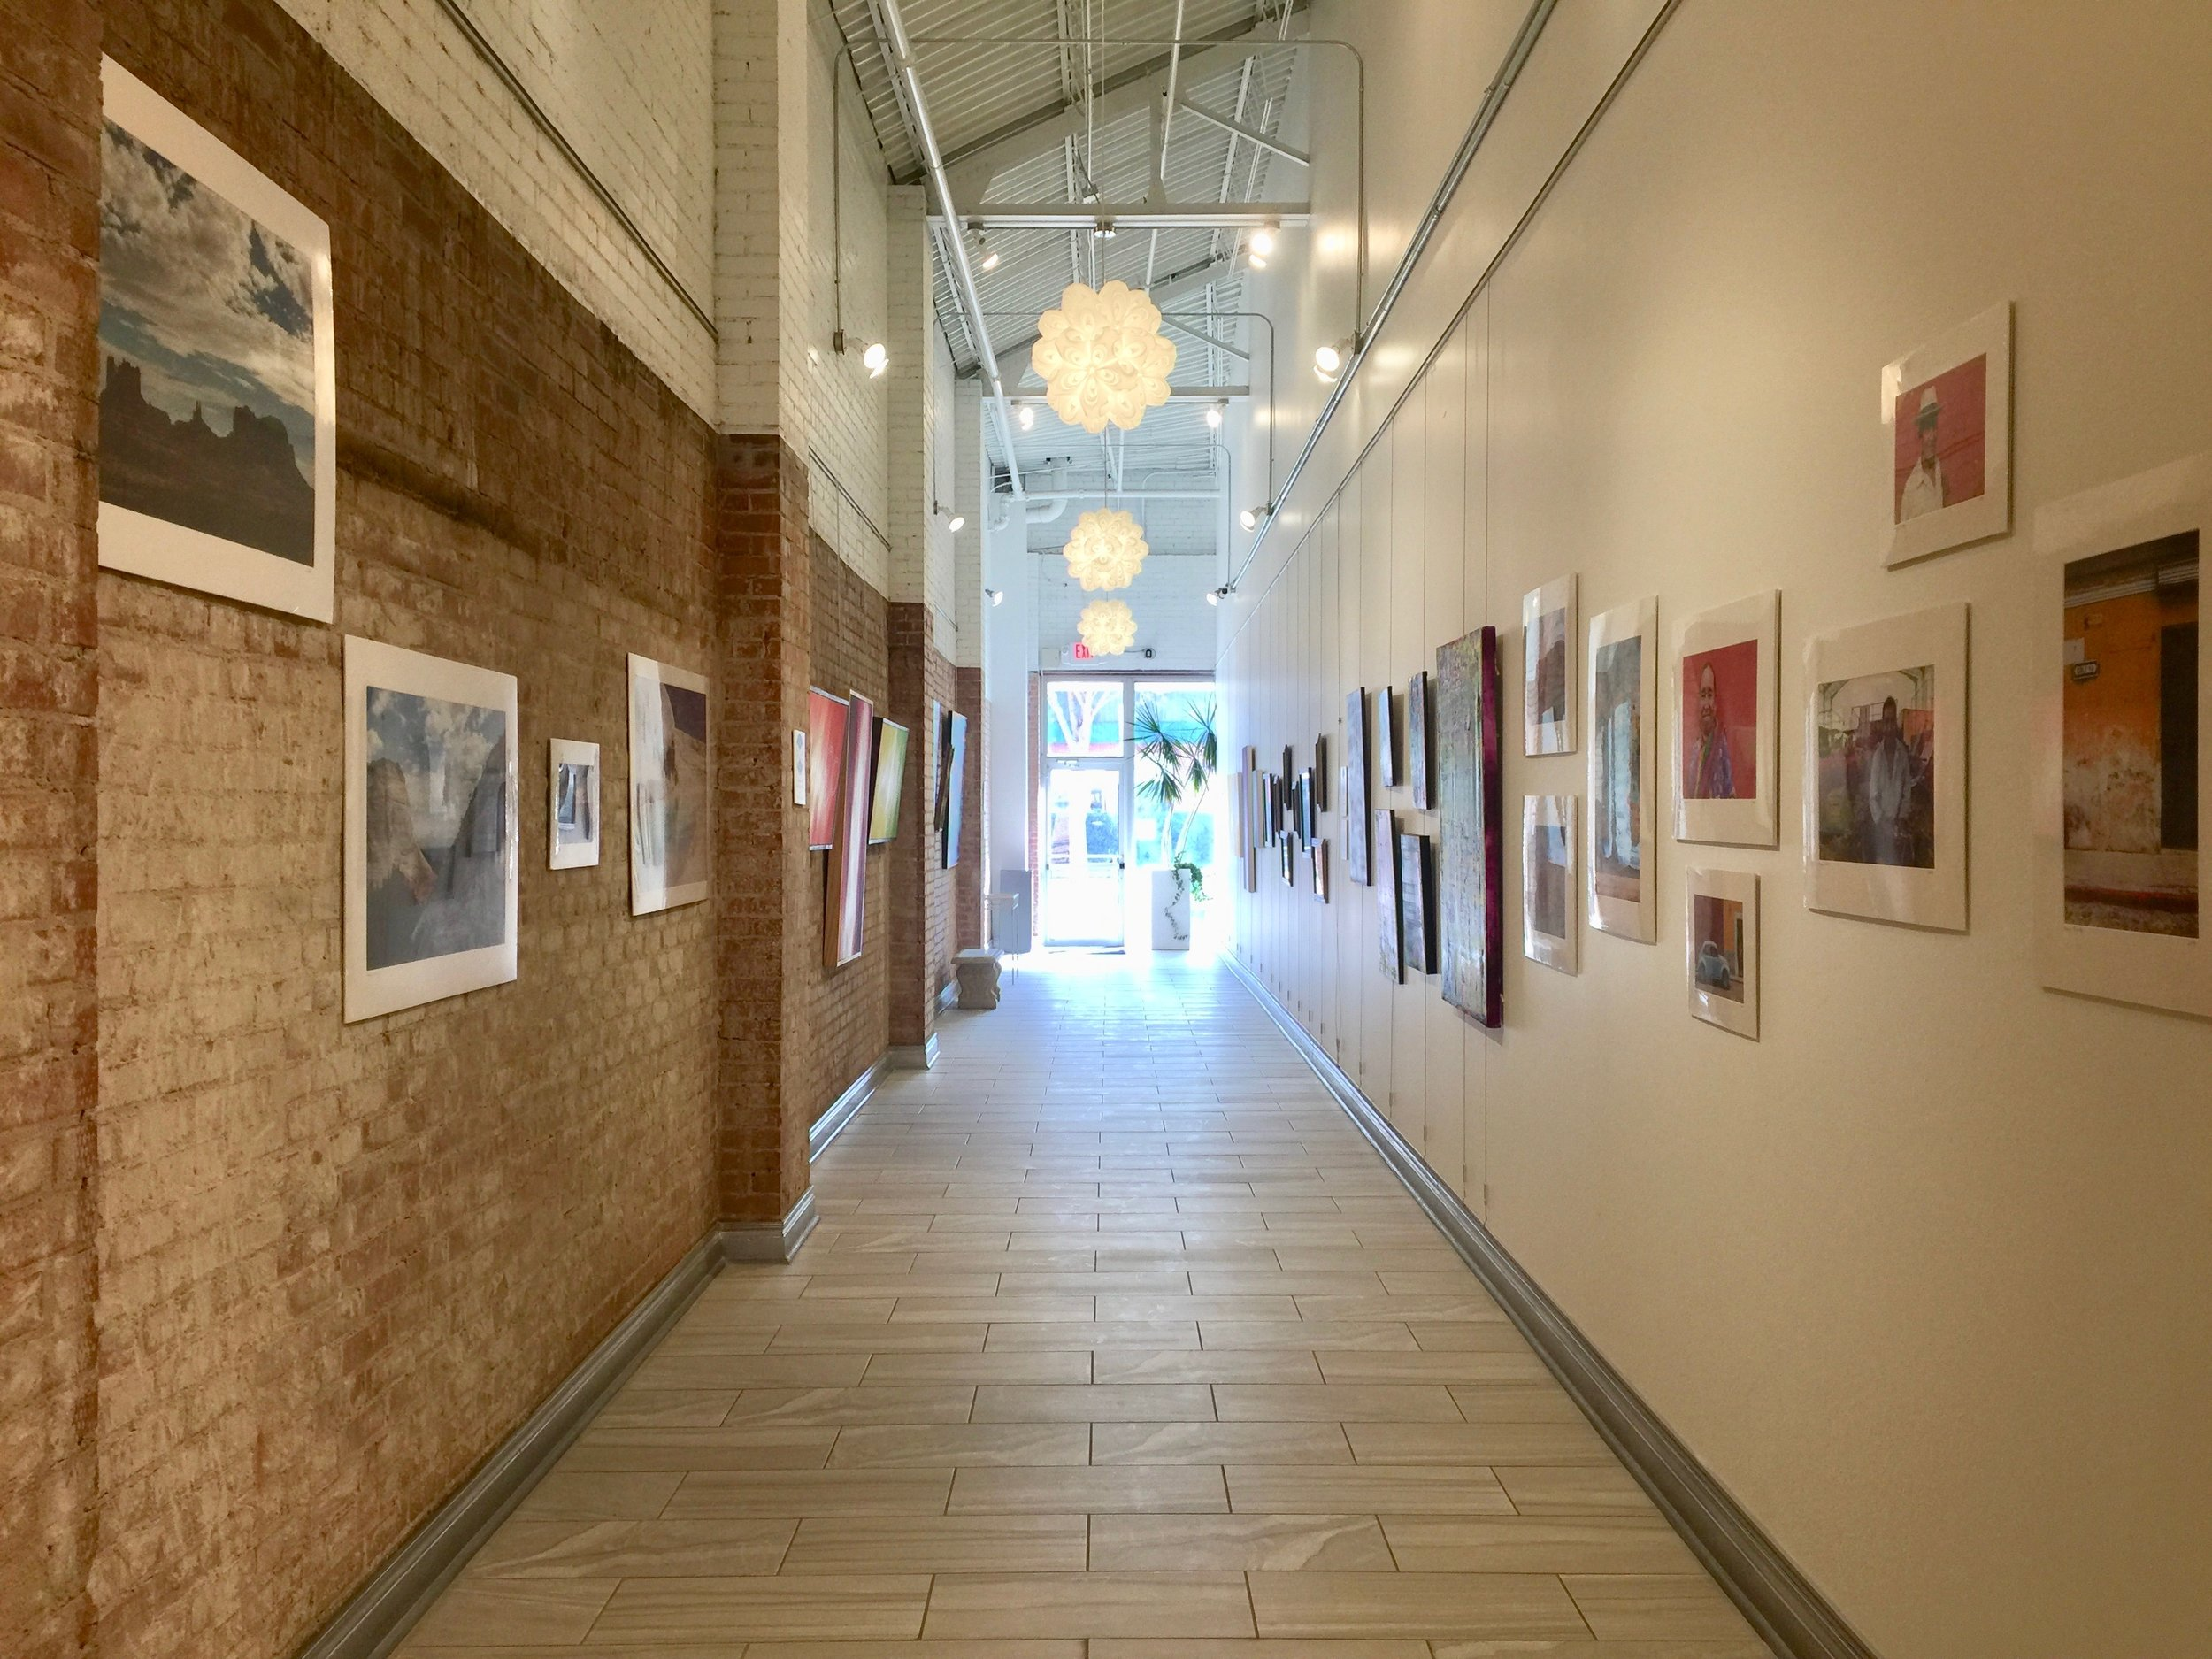 Installation view facing South, featuring Gregory Brindley